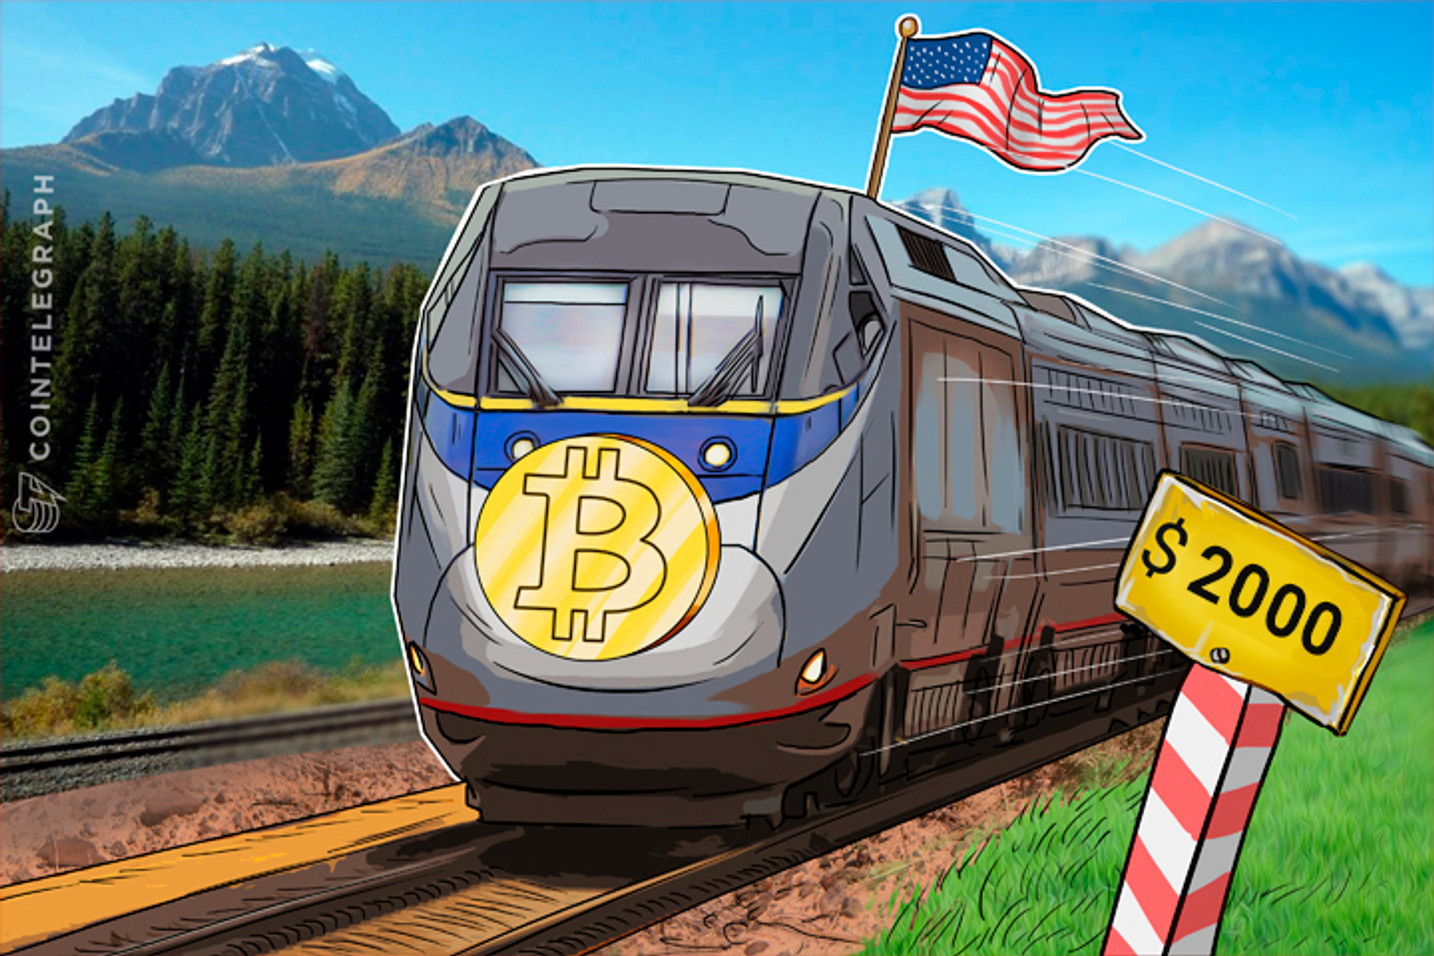 Bitcoin Price at $1,934 All-Time High, Led by US, to Reach $2,000 Soon